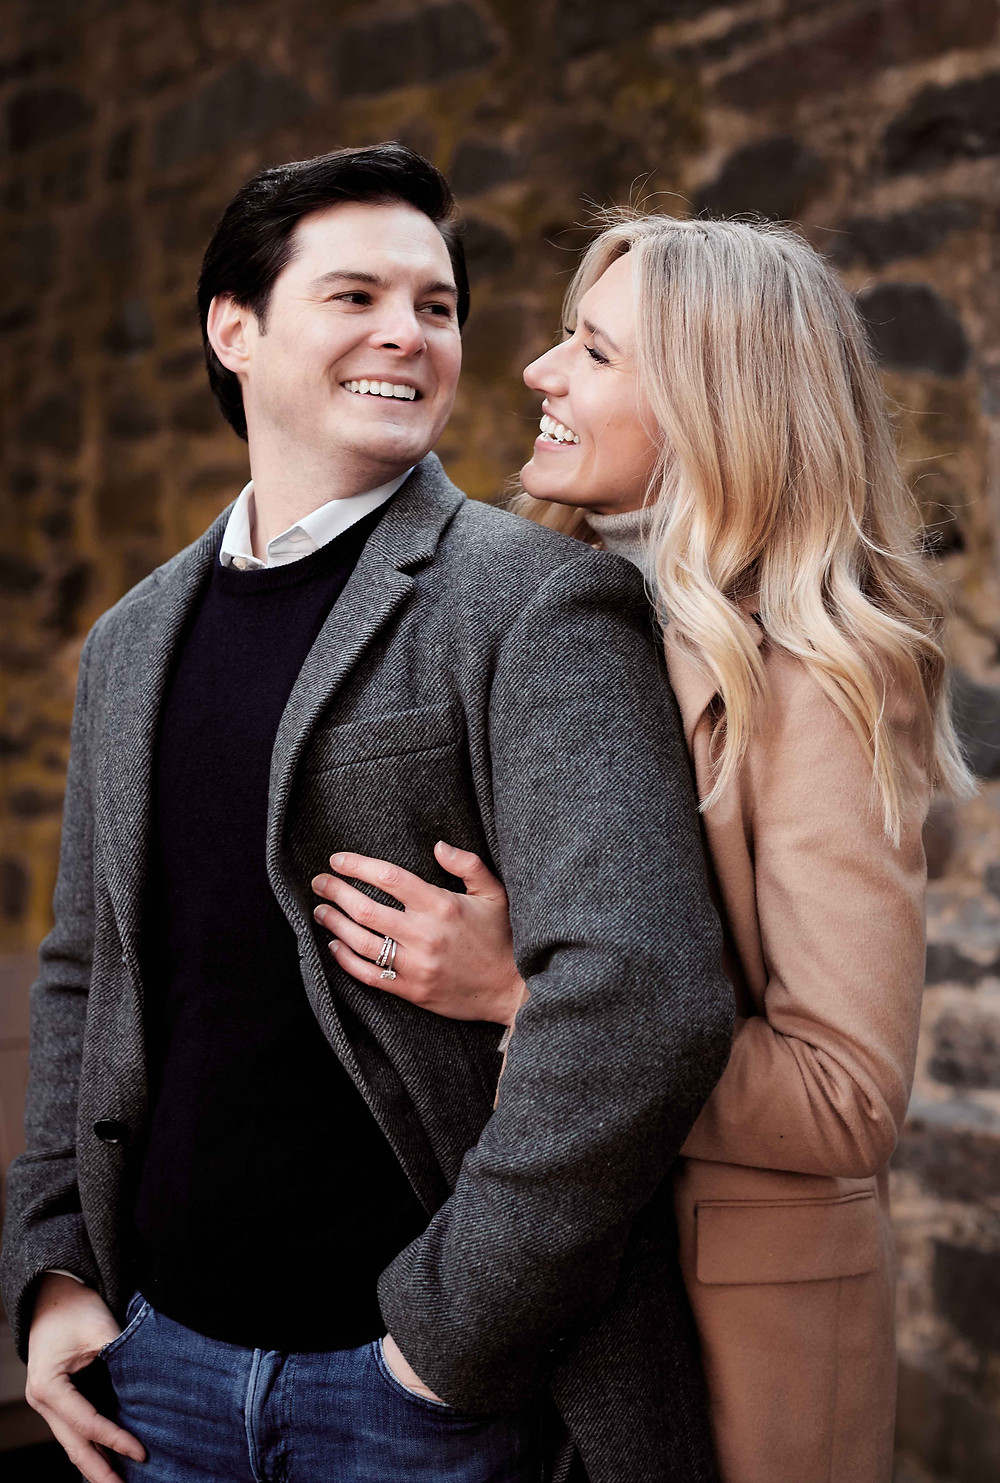 Engagement photography at the Carlyle House Historic Park Garden in Old Town Alexandria